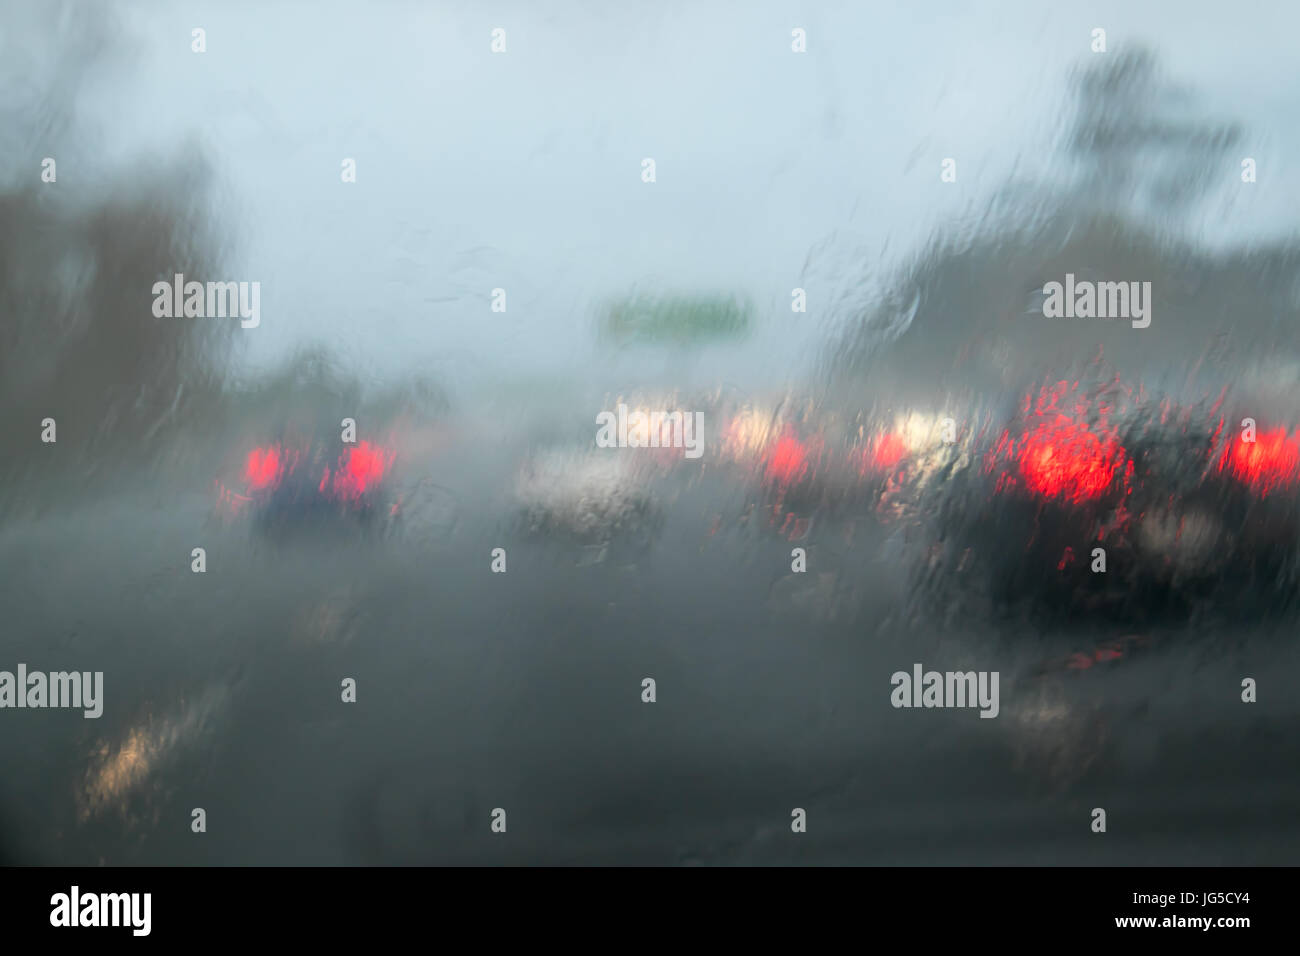 Driving with heavy rain on car windscreen on State Highway 1, Auckland, New Zealand, NZ - car in front does not - Stock Image